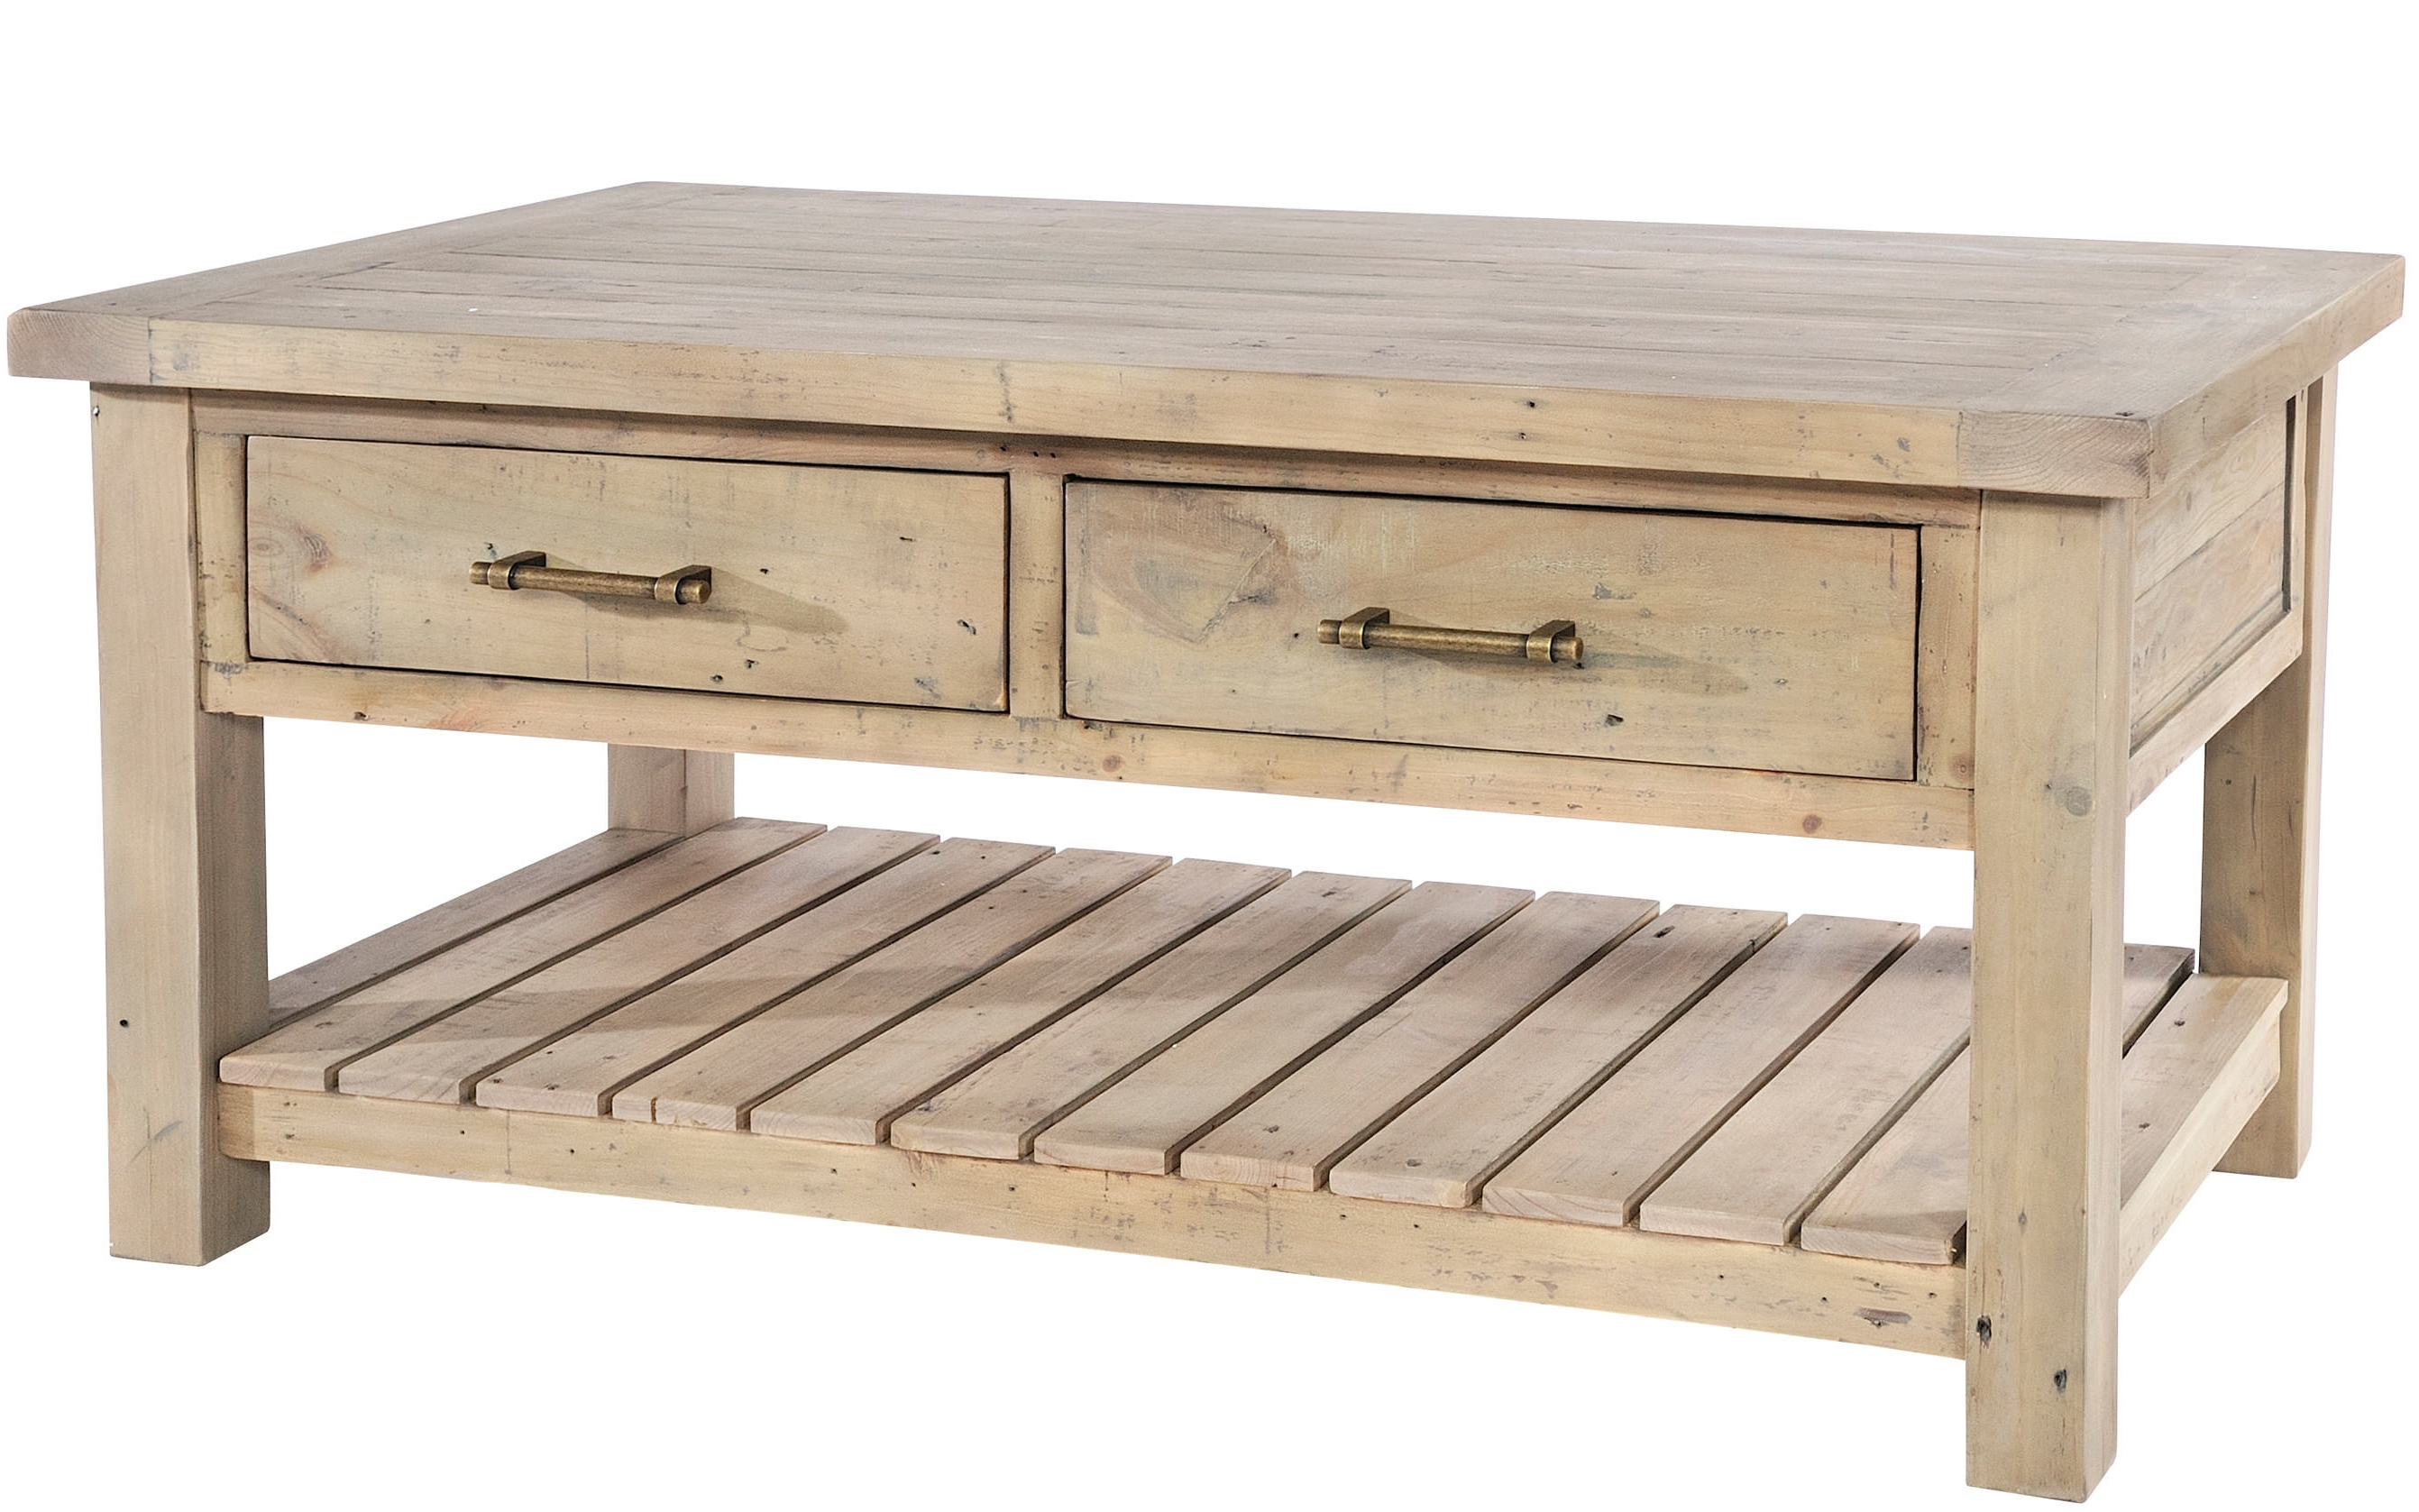 Widely Used Reclaimed Pine Coffee Tables Pertaining To Saltash Reclaimed Pine Coffee Table (View 12 of 20)